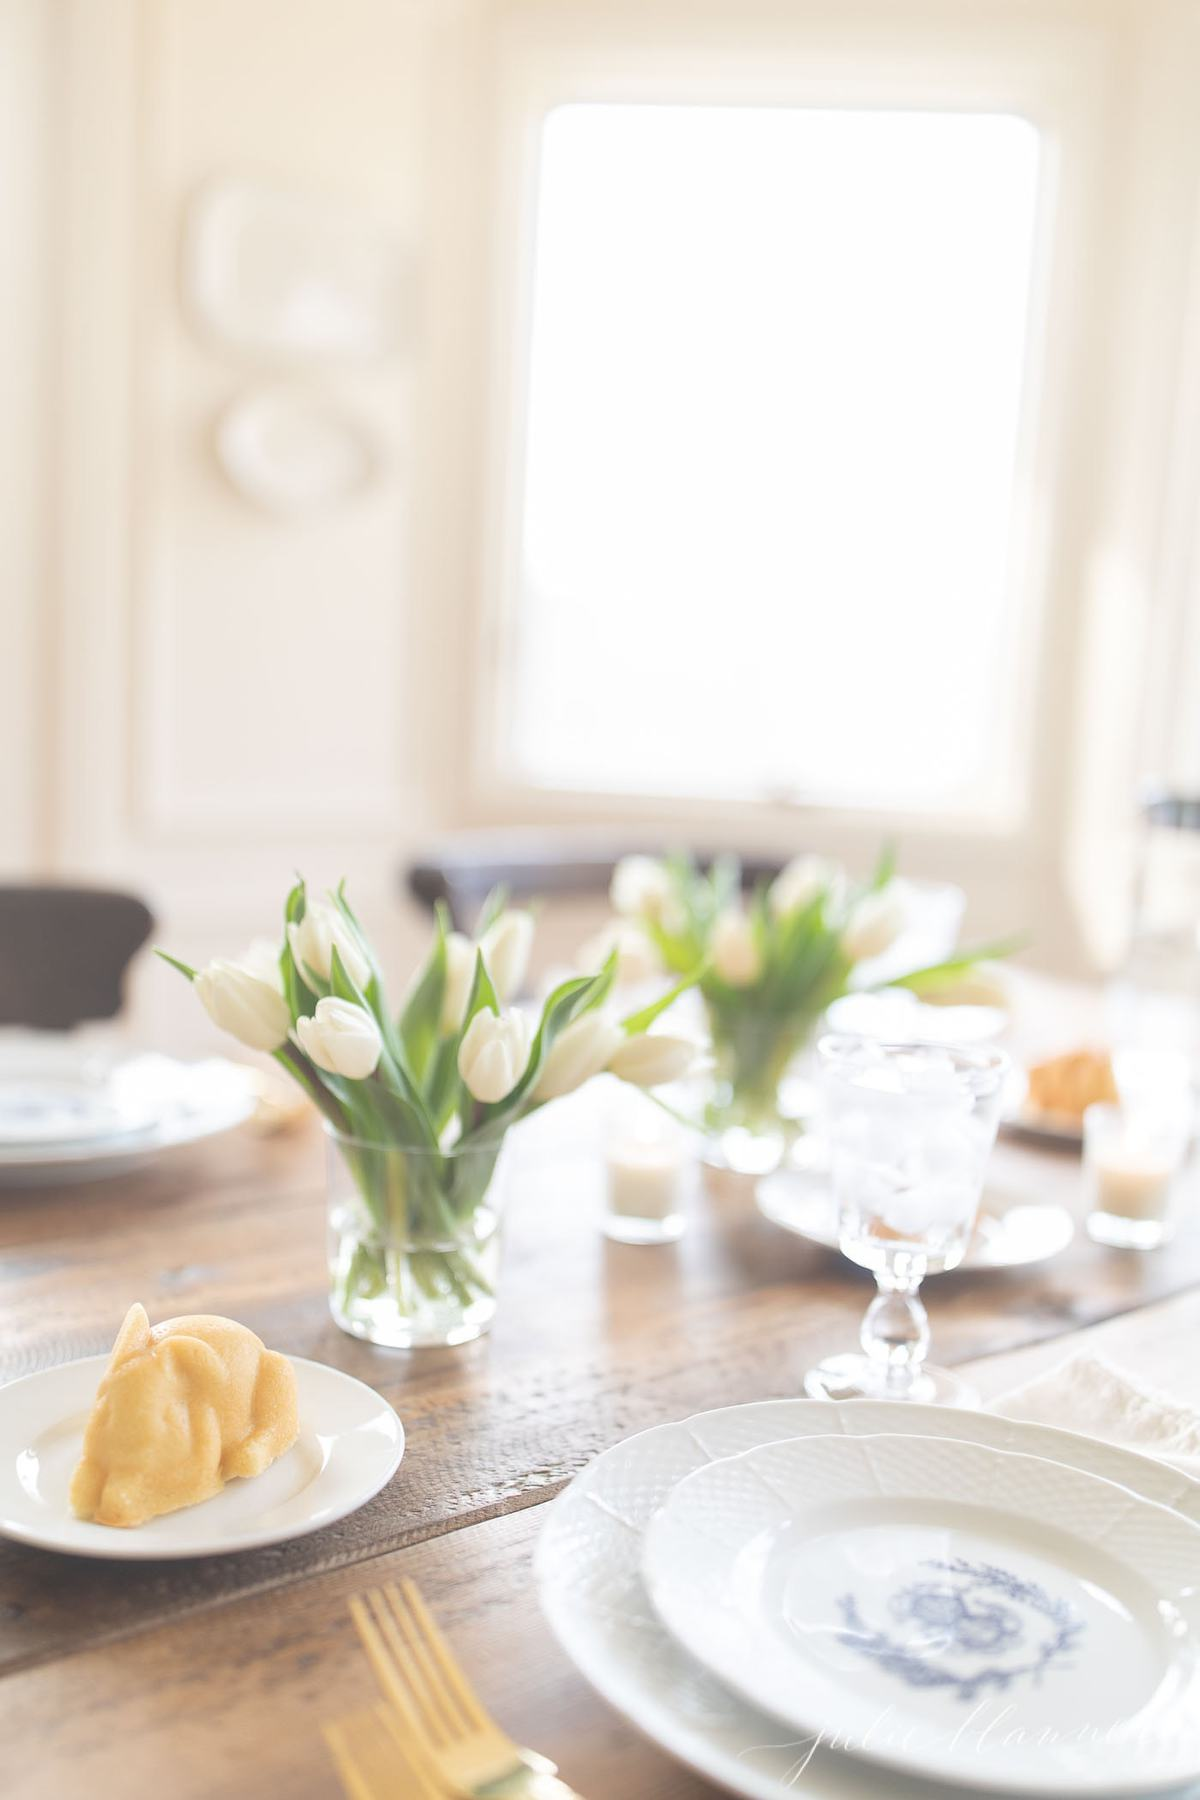 easter cake at each place setting with tulips